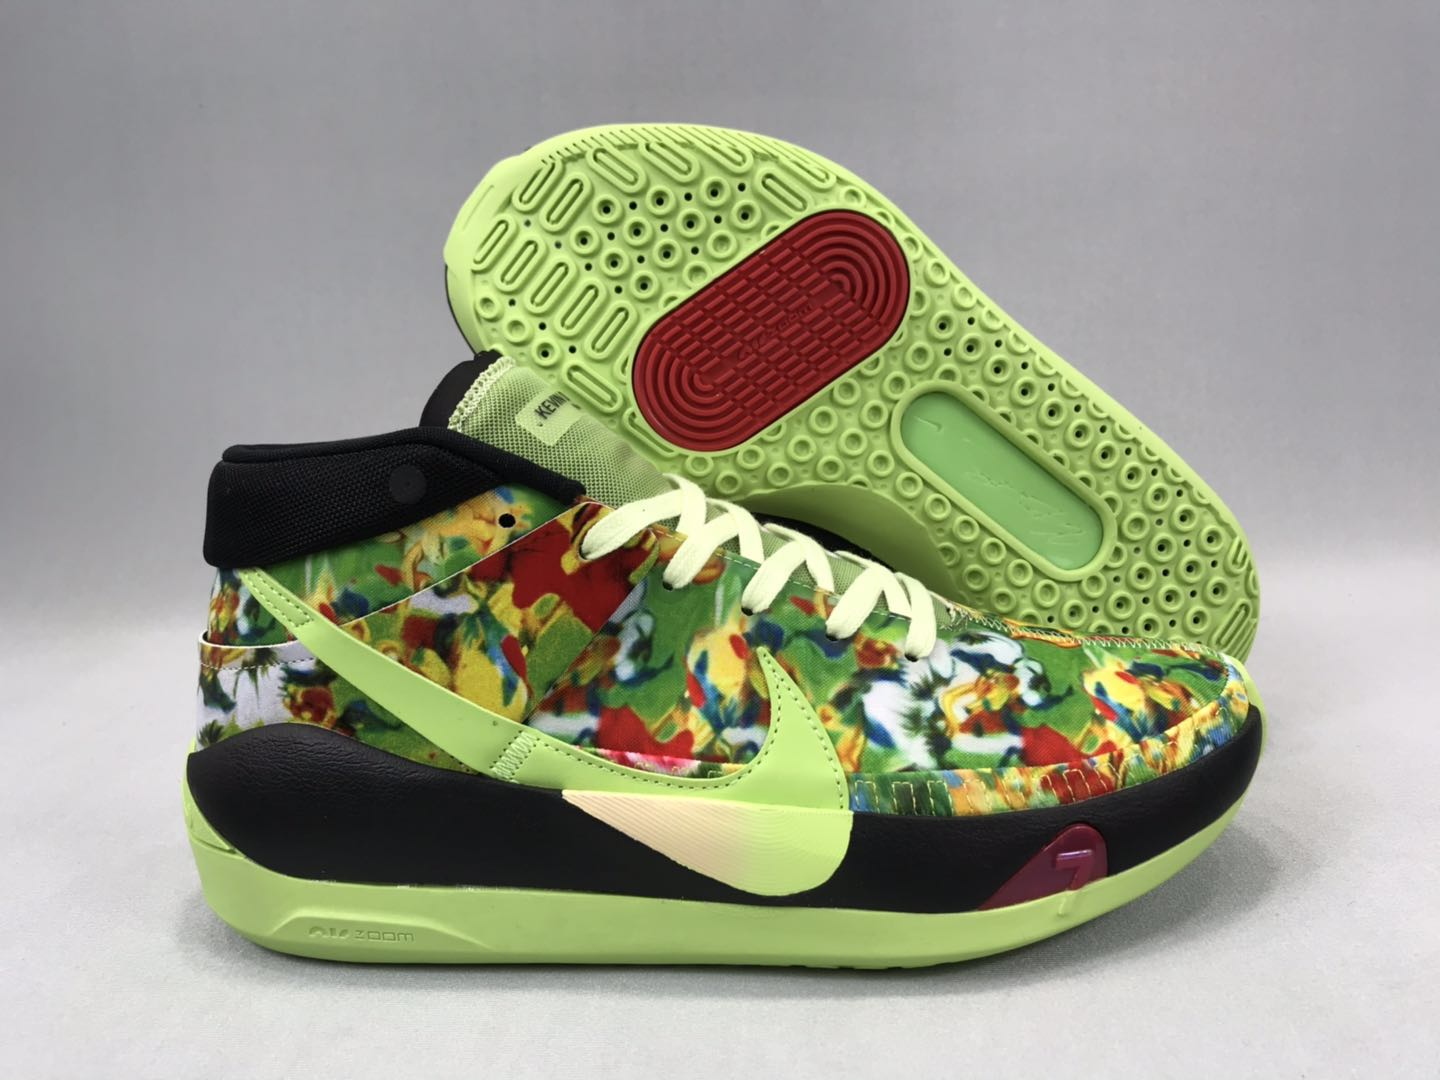 Nike KD 13 Army Green Black Red Shoes